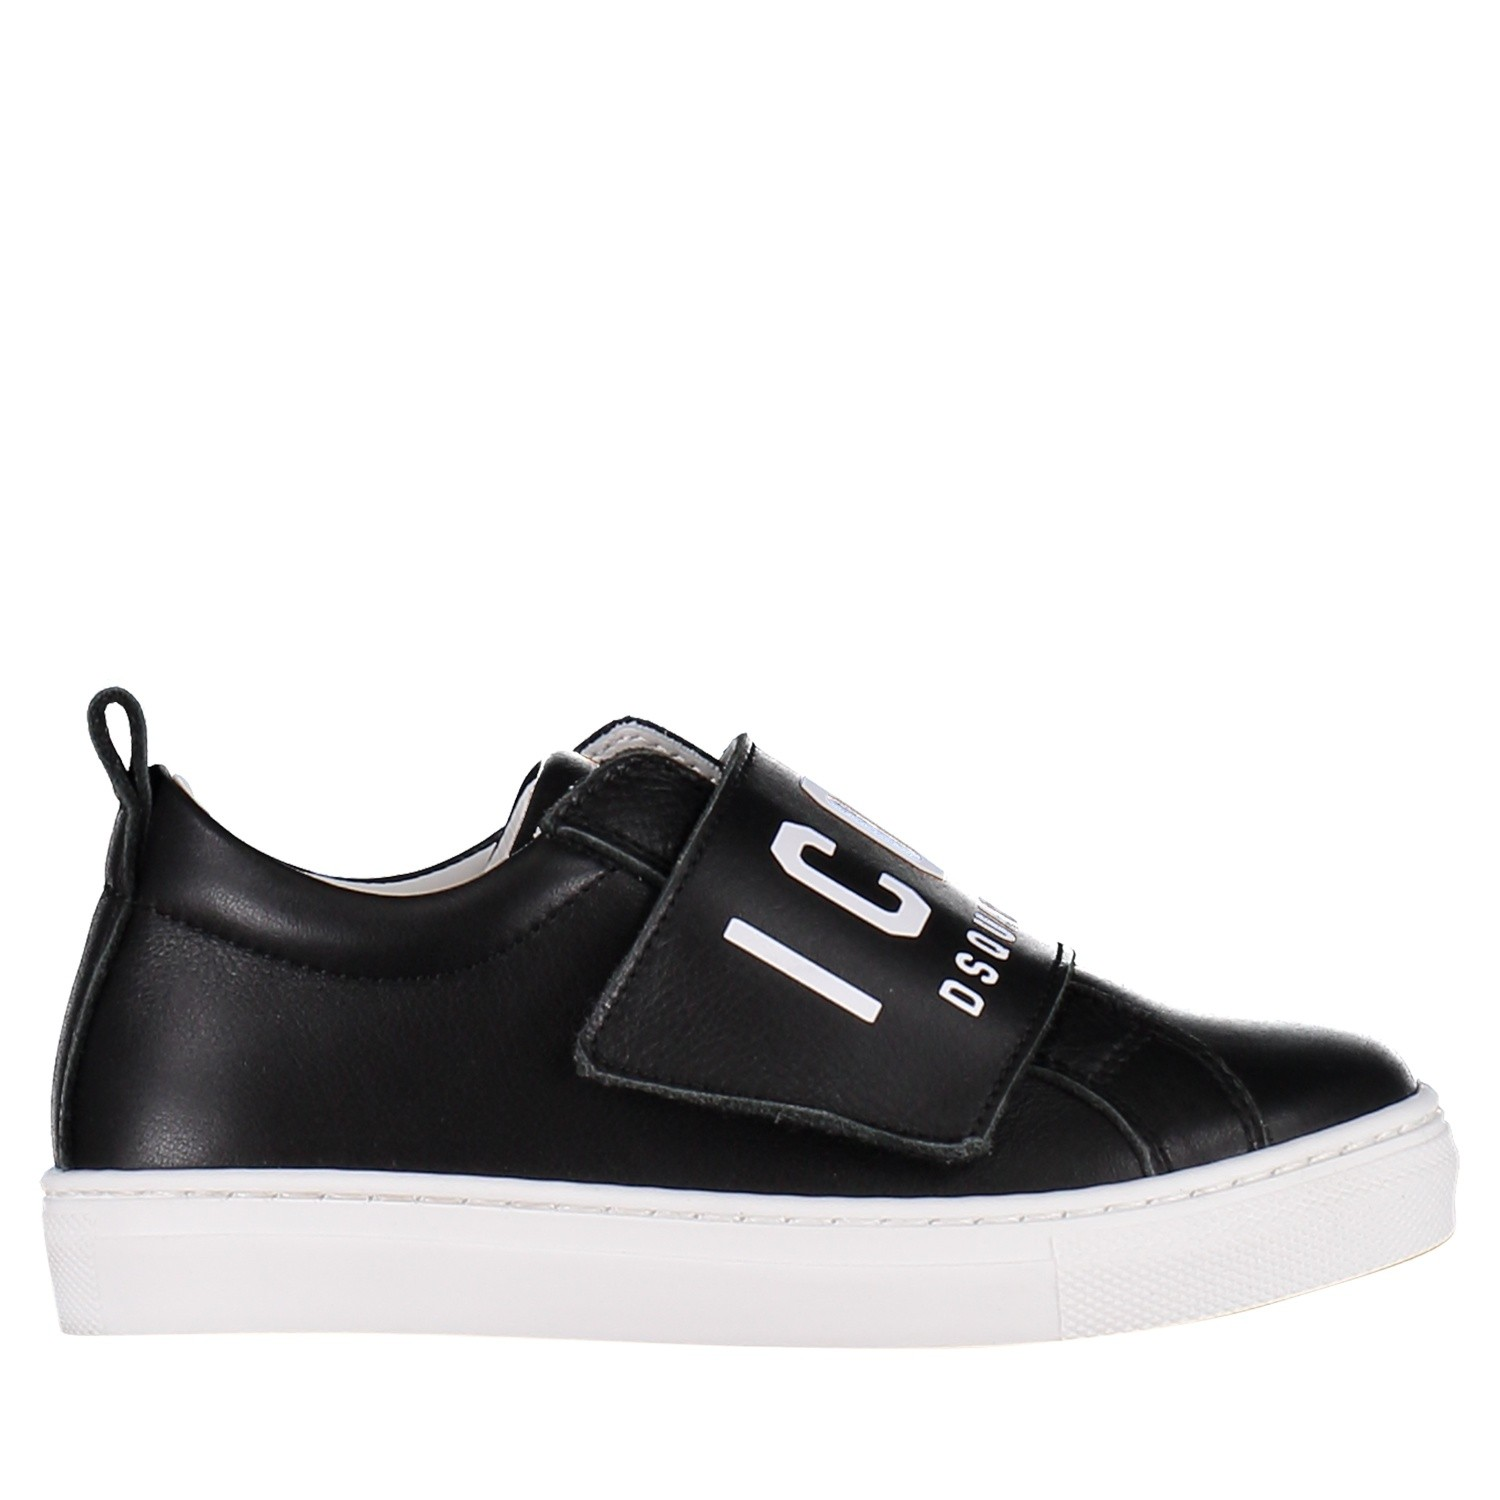 Picture of Dsquared2 57112 kids sneakers black